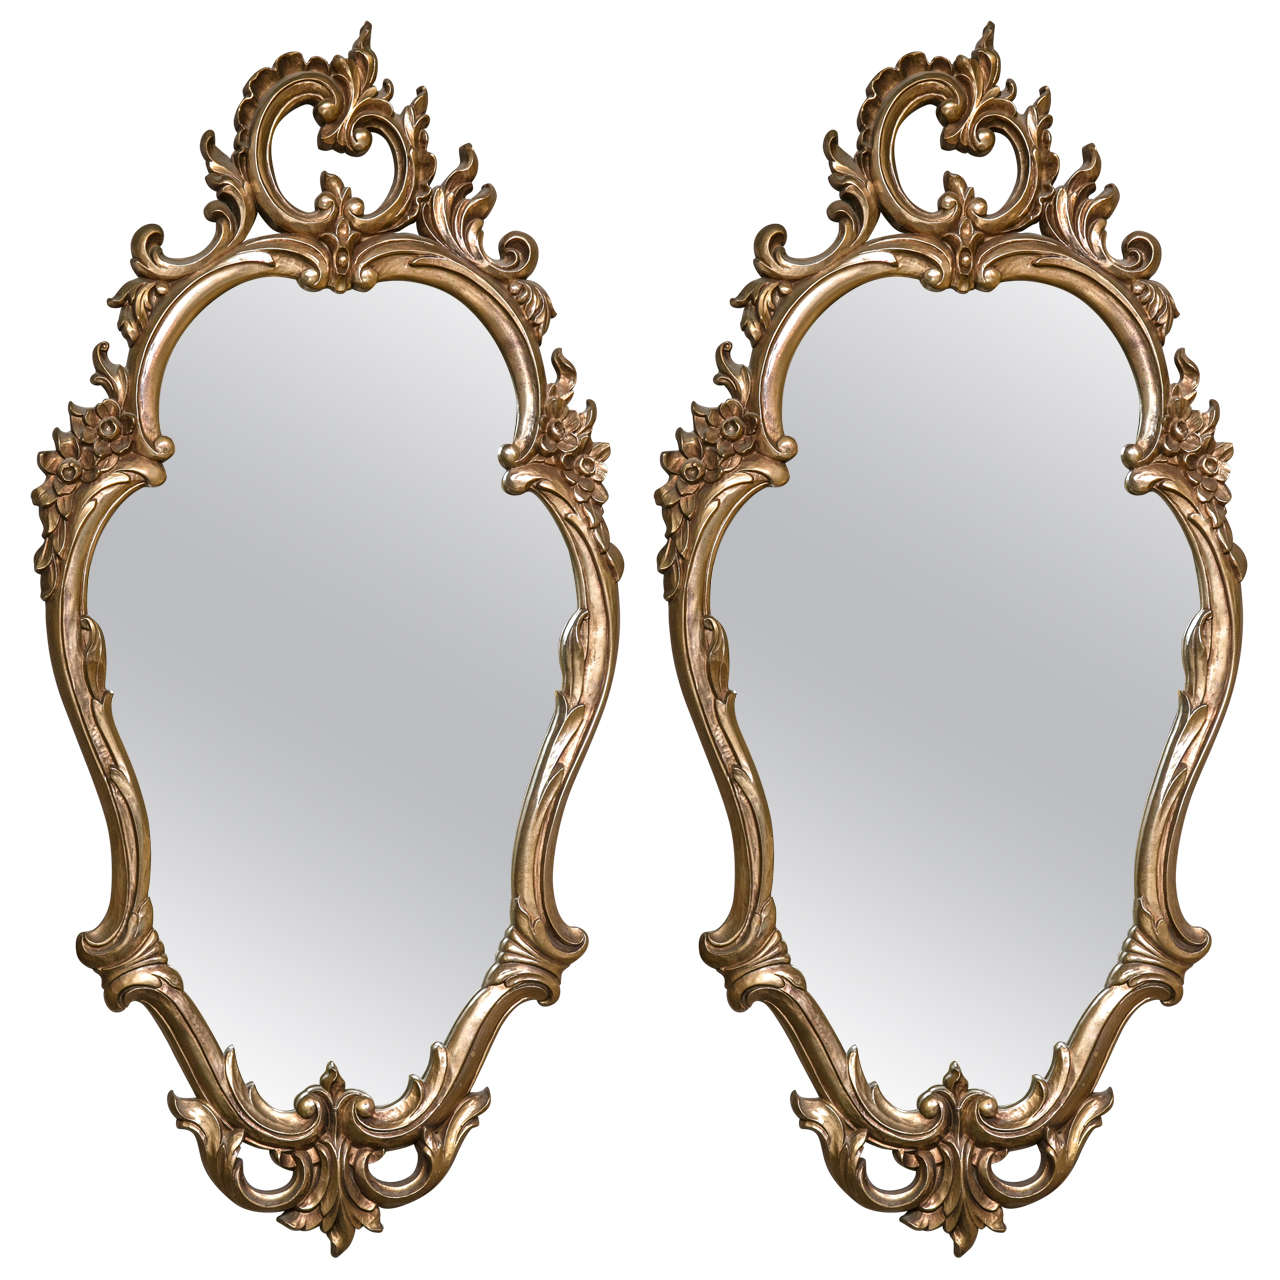 pair of decorative rococo style mirrors at 1stdibs